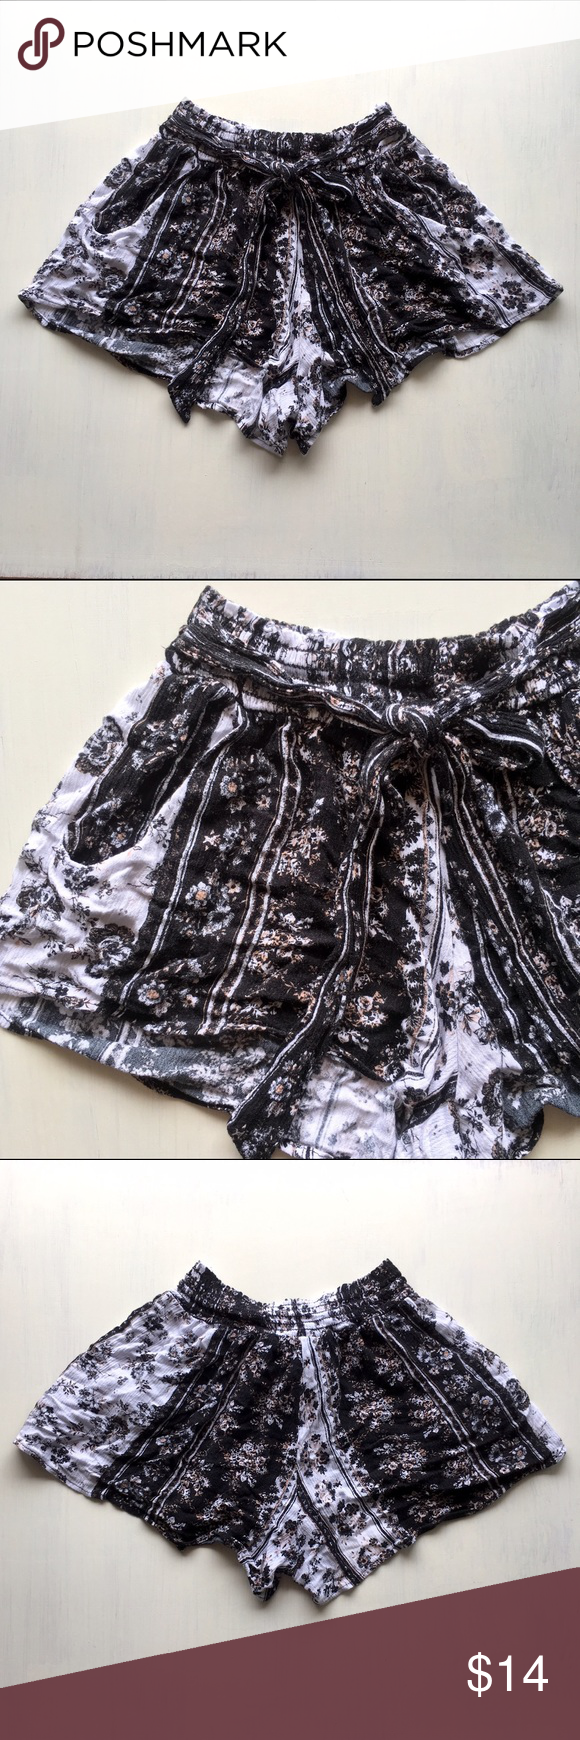 Light Flowy Smocked High Waist Floral Shorts w Tie Floral Black White Lightweight Soft Flowy Smocked Floral Short Shorts with decorative Tie in front. Can be high-waist or low. Comfortable pull-on-and-go shorts. Says Large, but fit like a MEDIUM. Lightly used, good condition. JW Girl Shorts